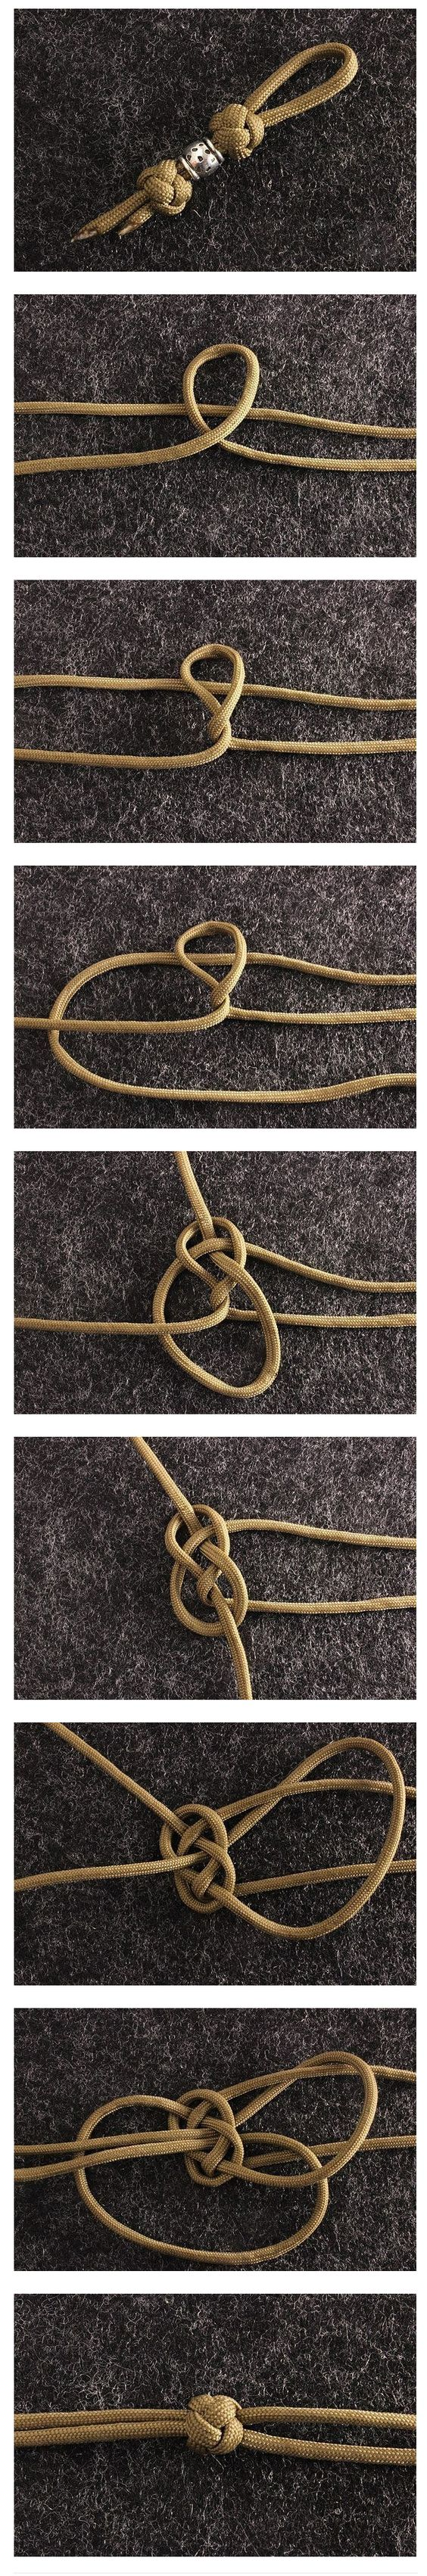 How to tie a cute knot